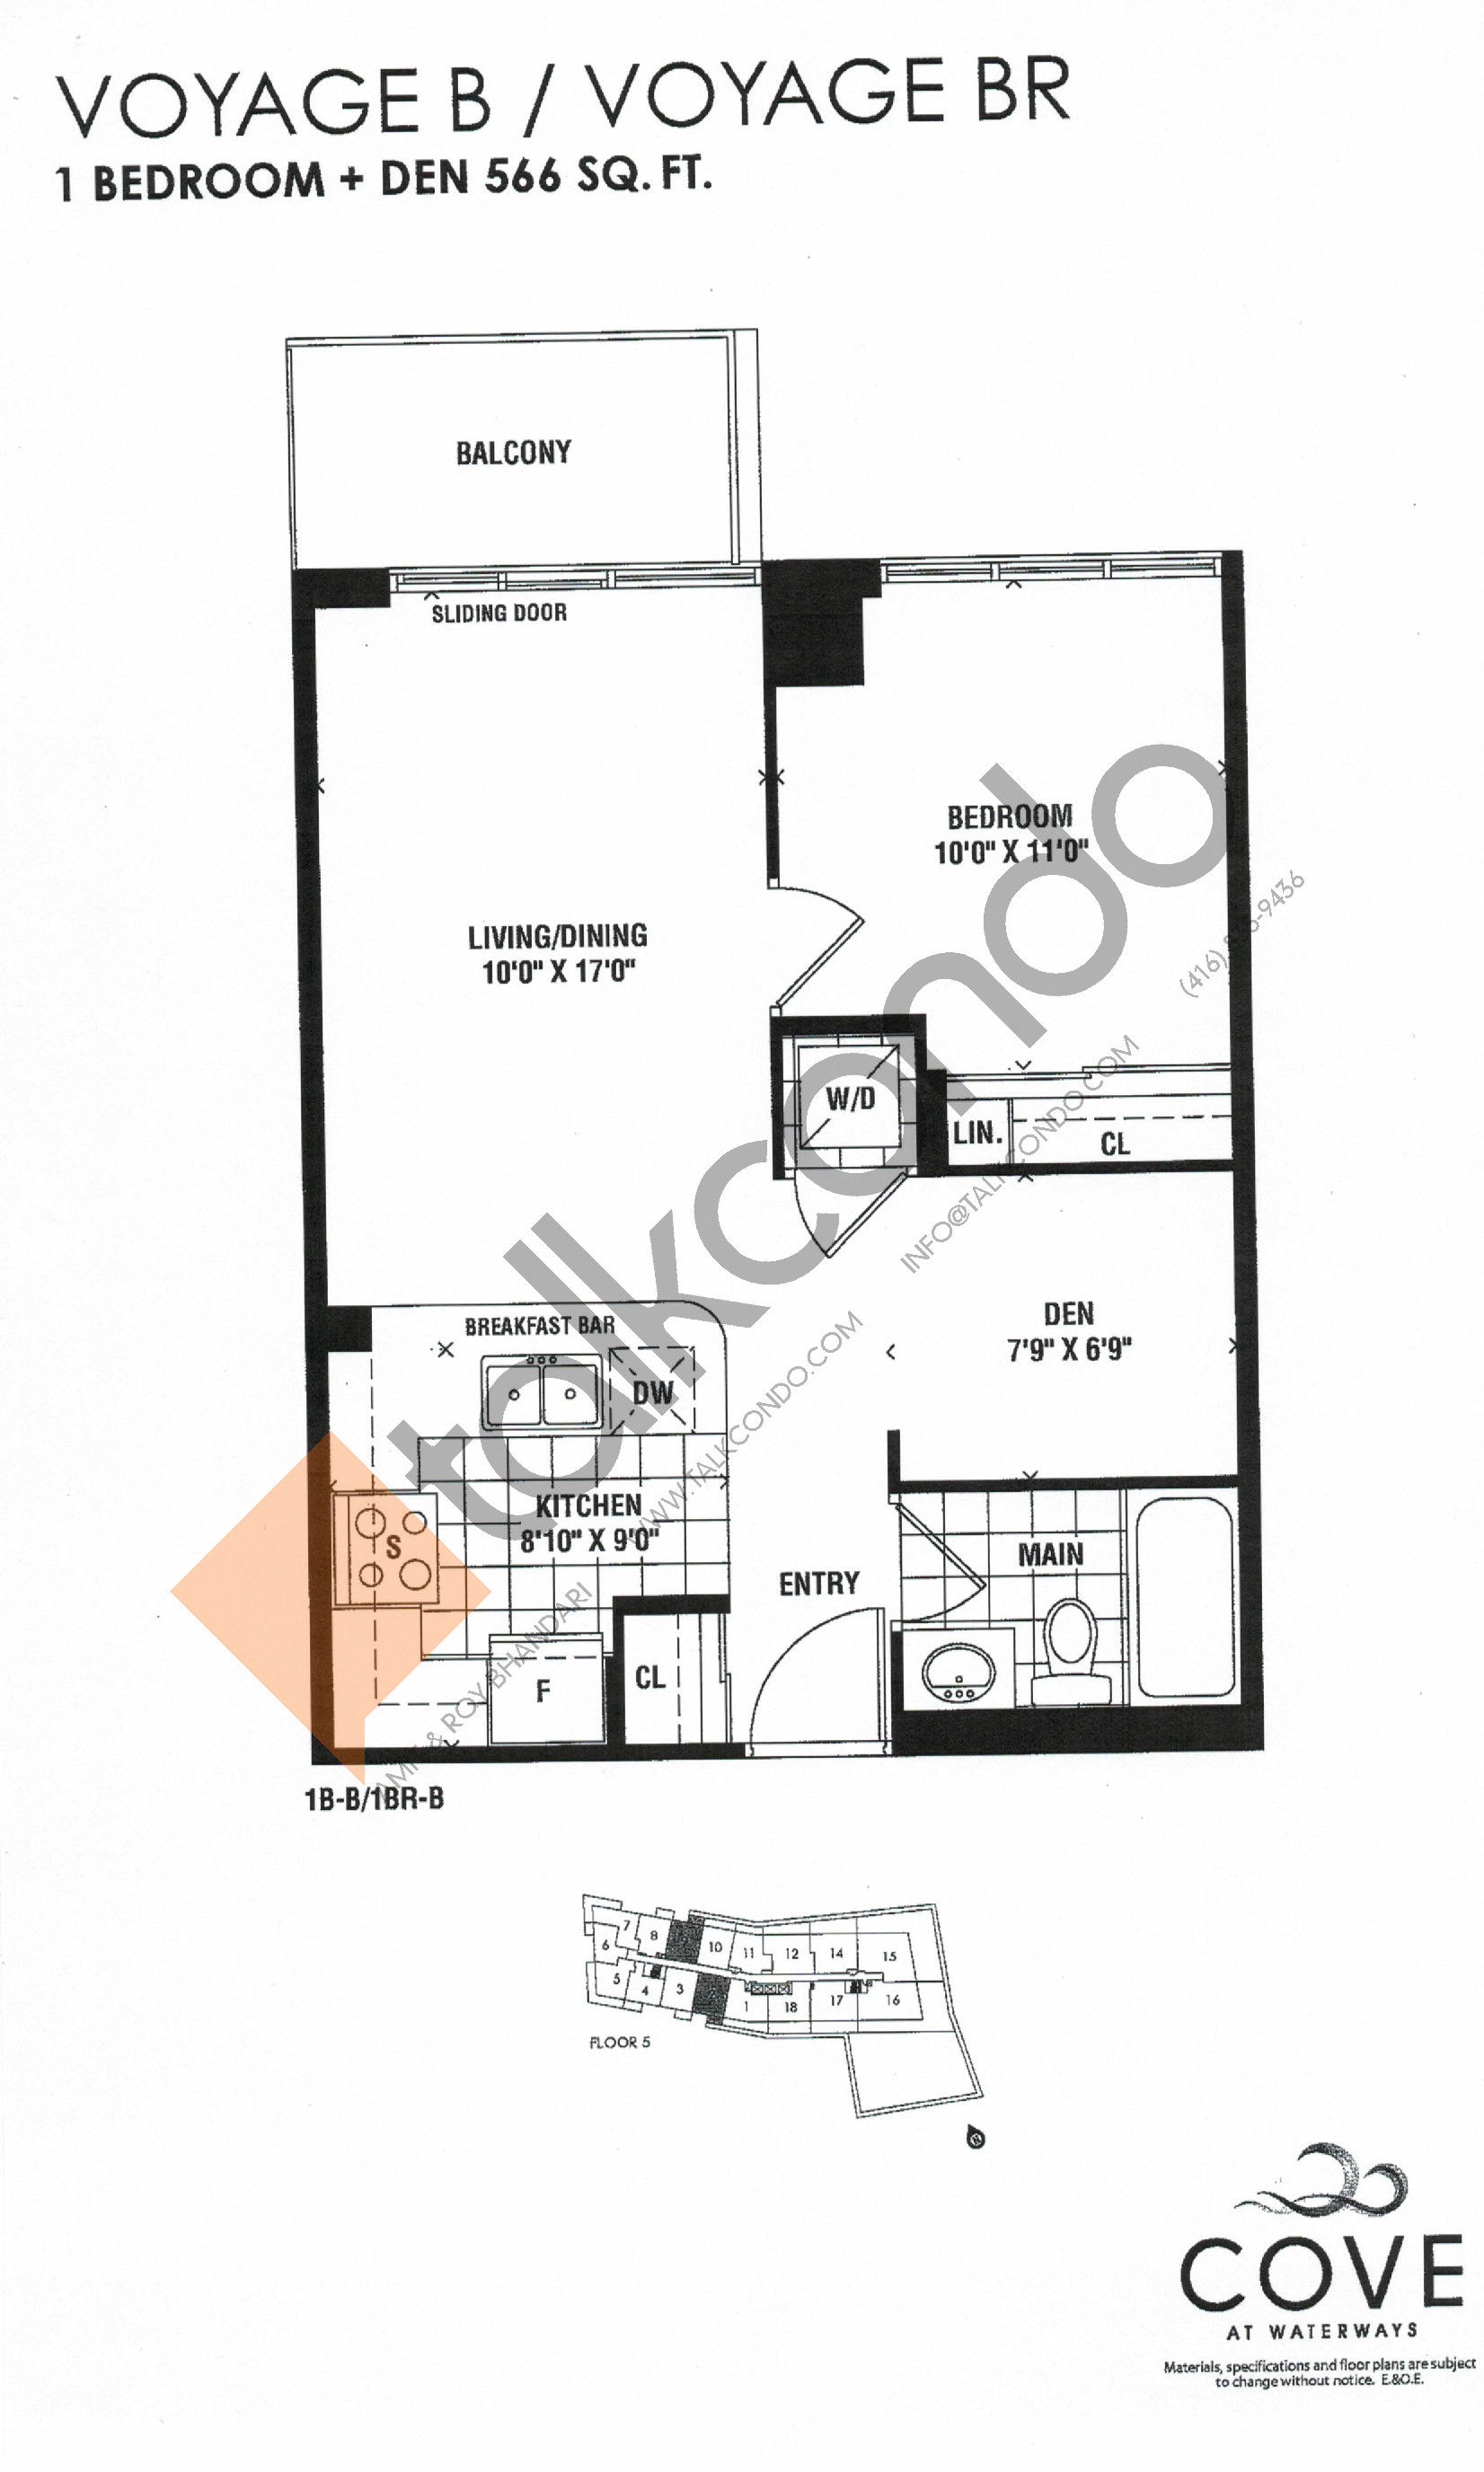 Voyage B / Voyage BR Floor Plan at Cove at Waterways Condos - 566 sq.ft